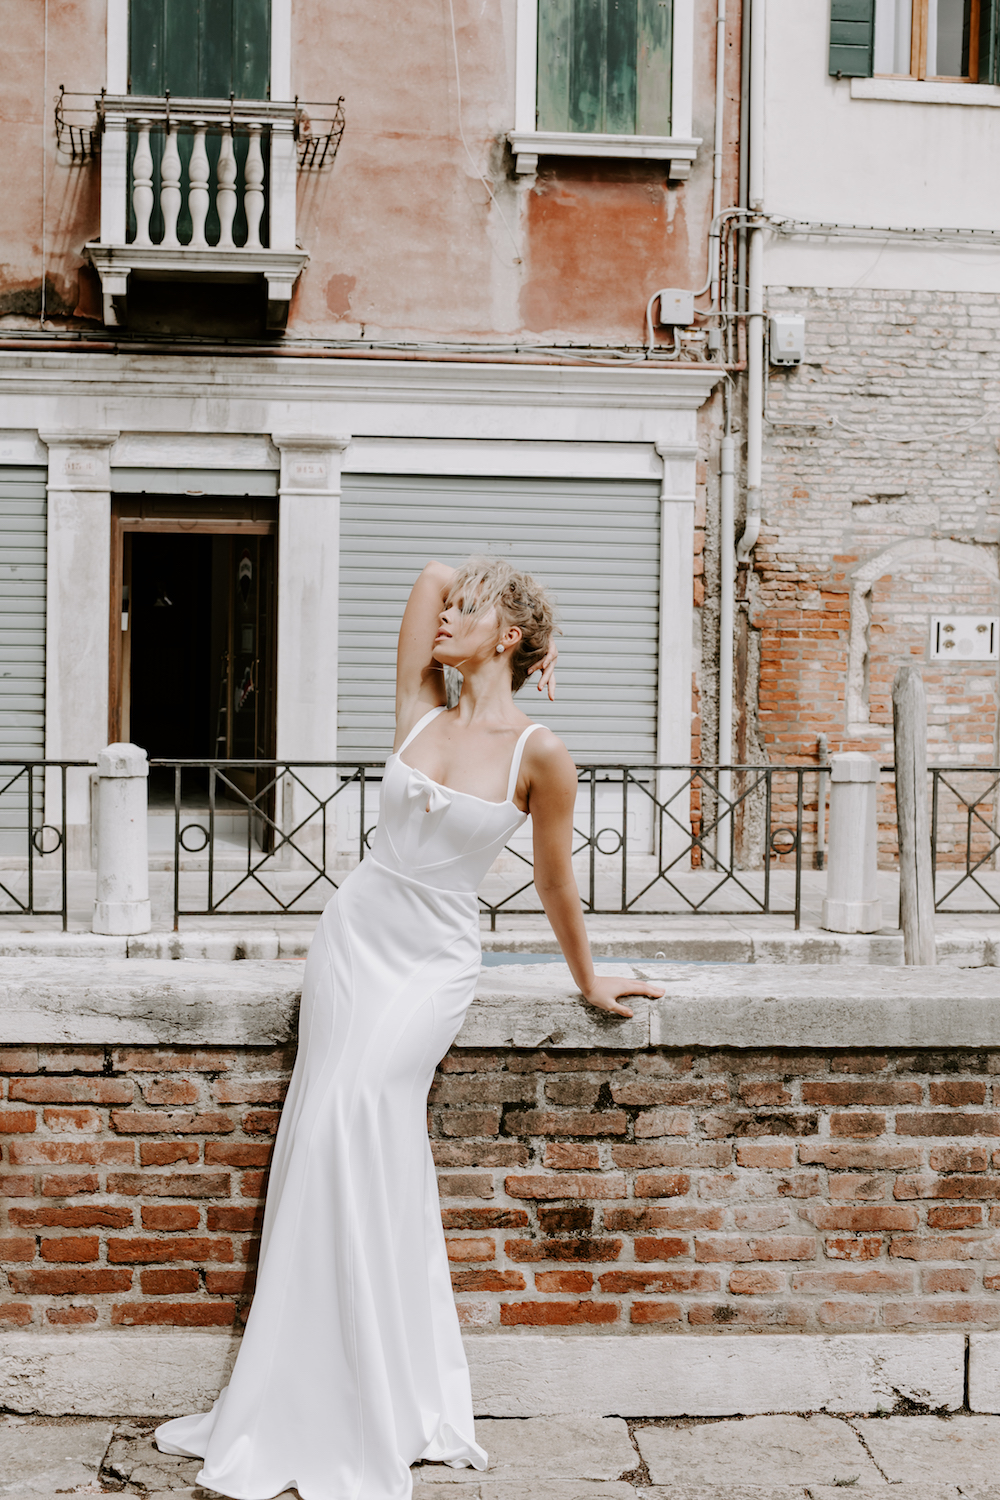 The SOFIA wedding dress from the Georgia Young Couture 'Summer Wine' RTW Collection featured on LOVE FIND CO.